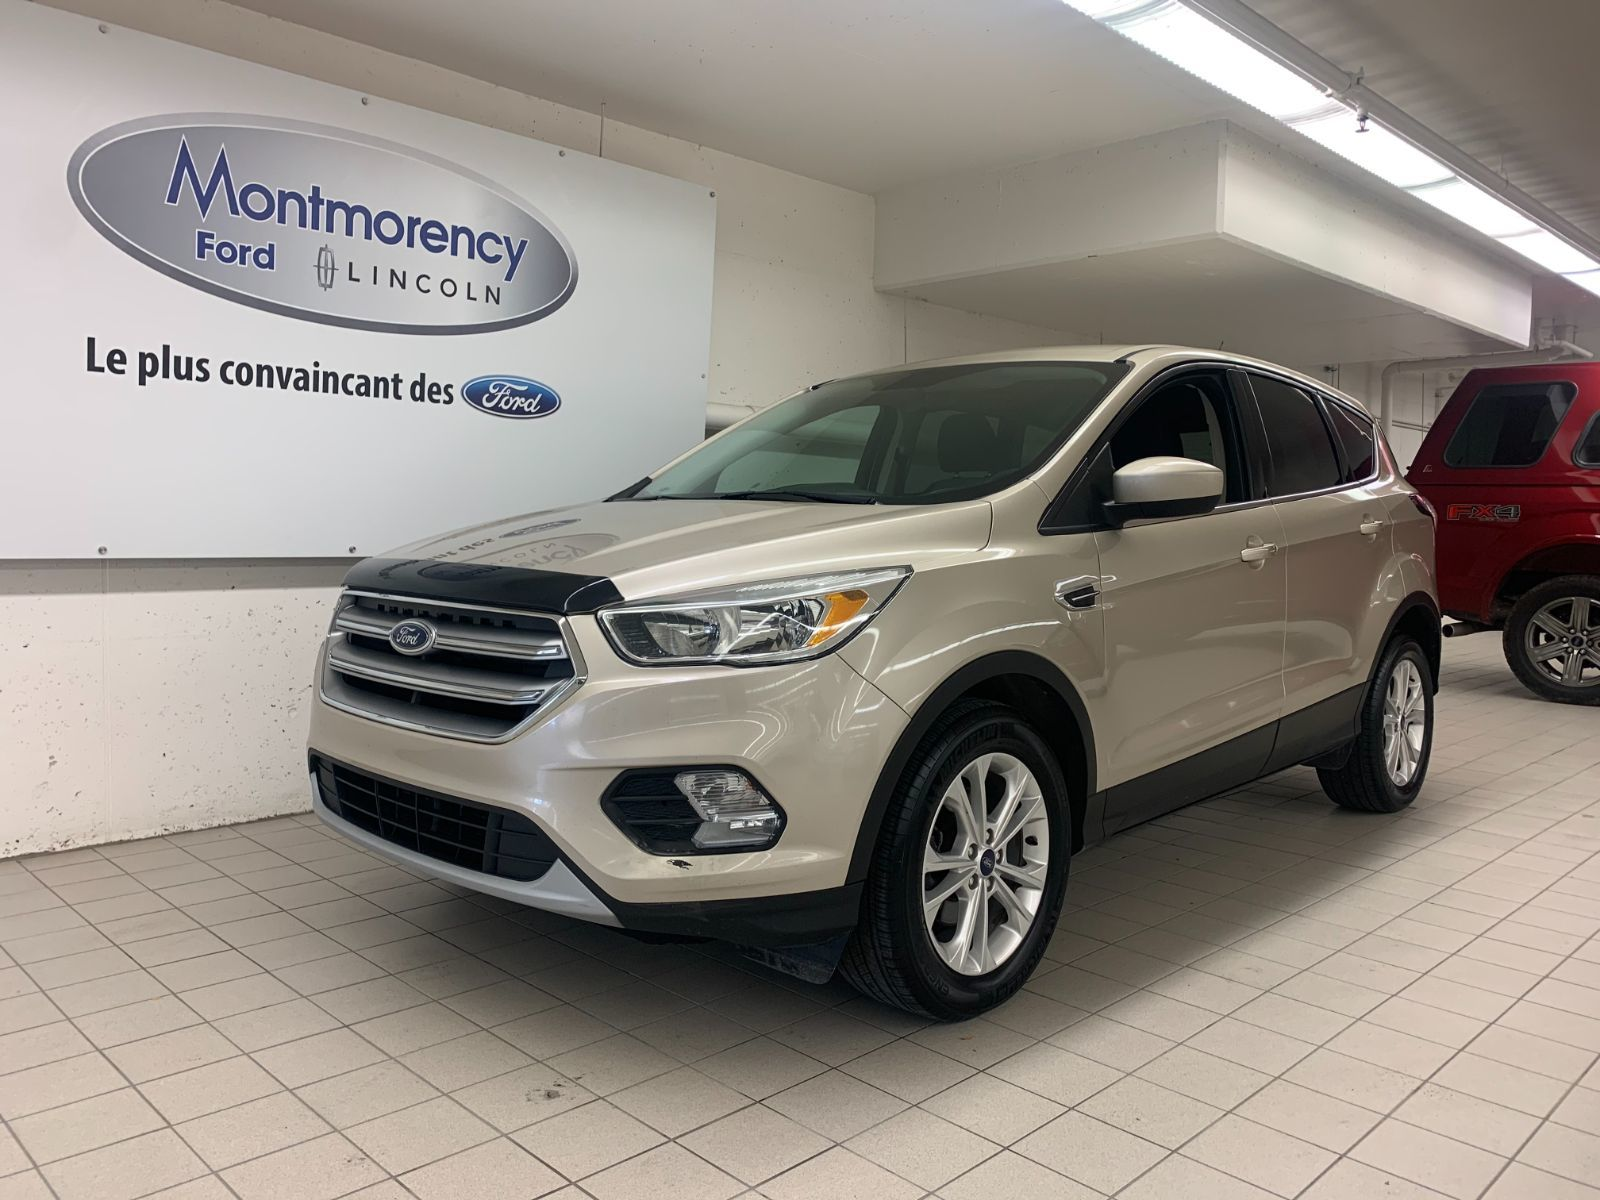 2017 Ford Escape complet